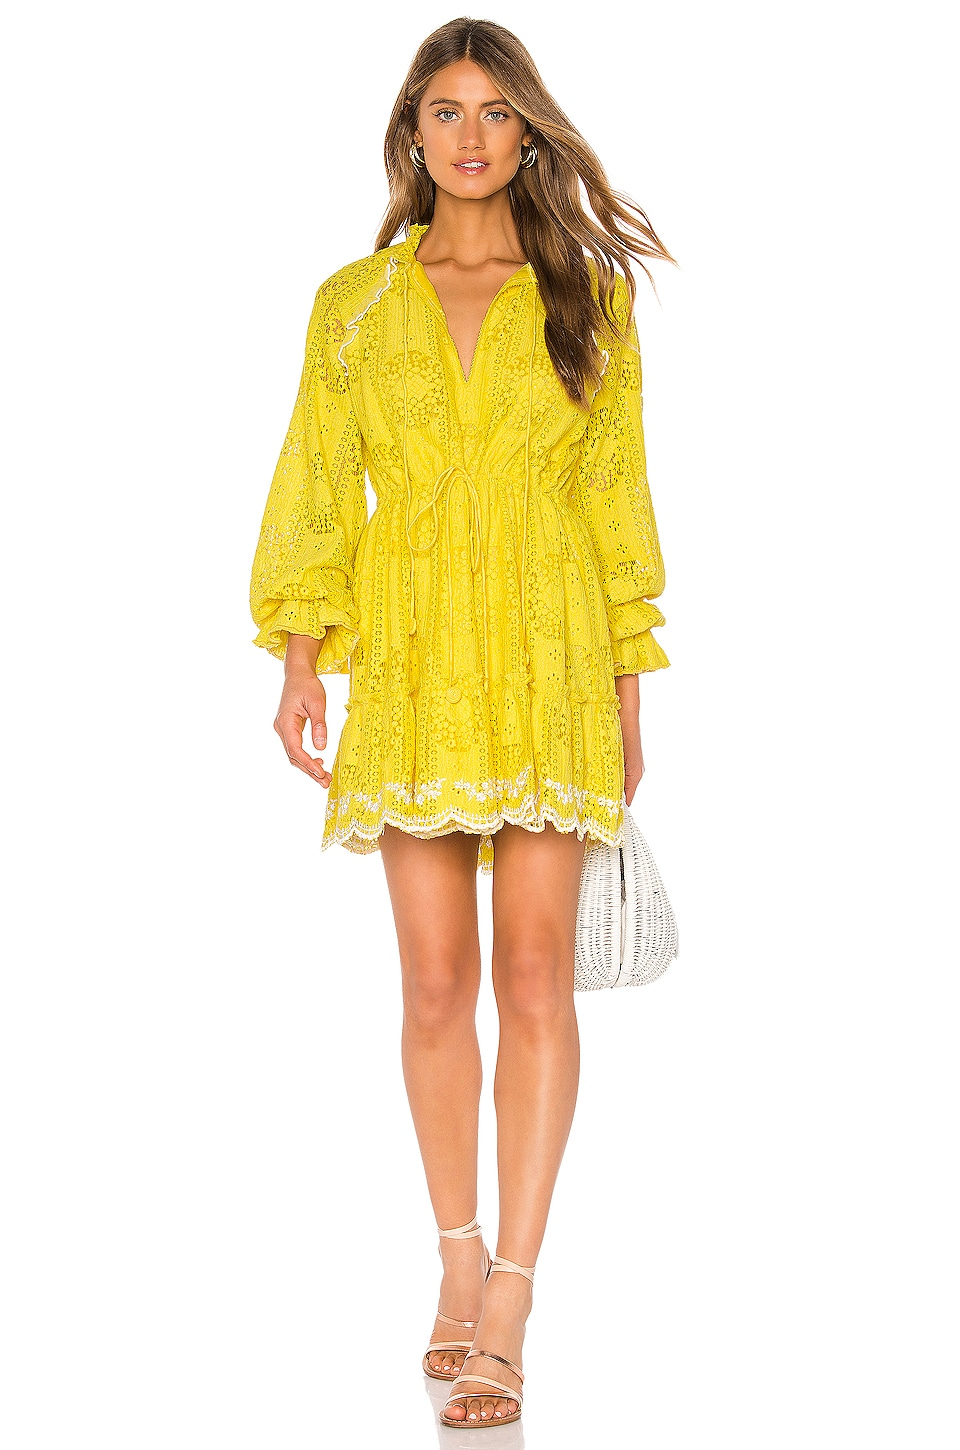 HEMANT AND NANDITA Sol Mini Dress in Yellow